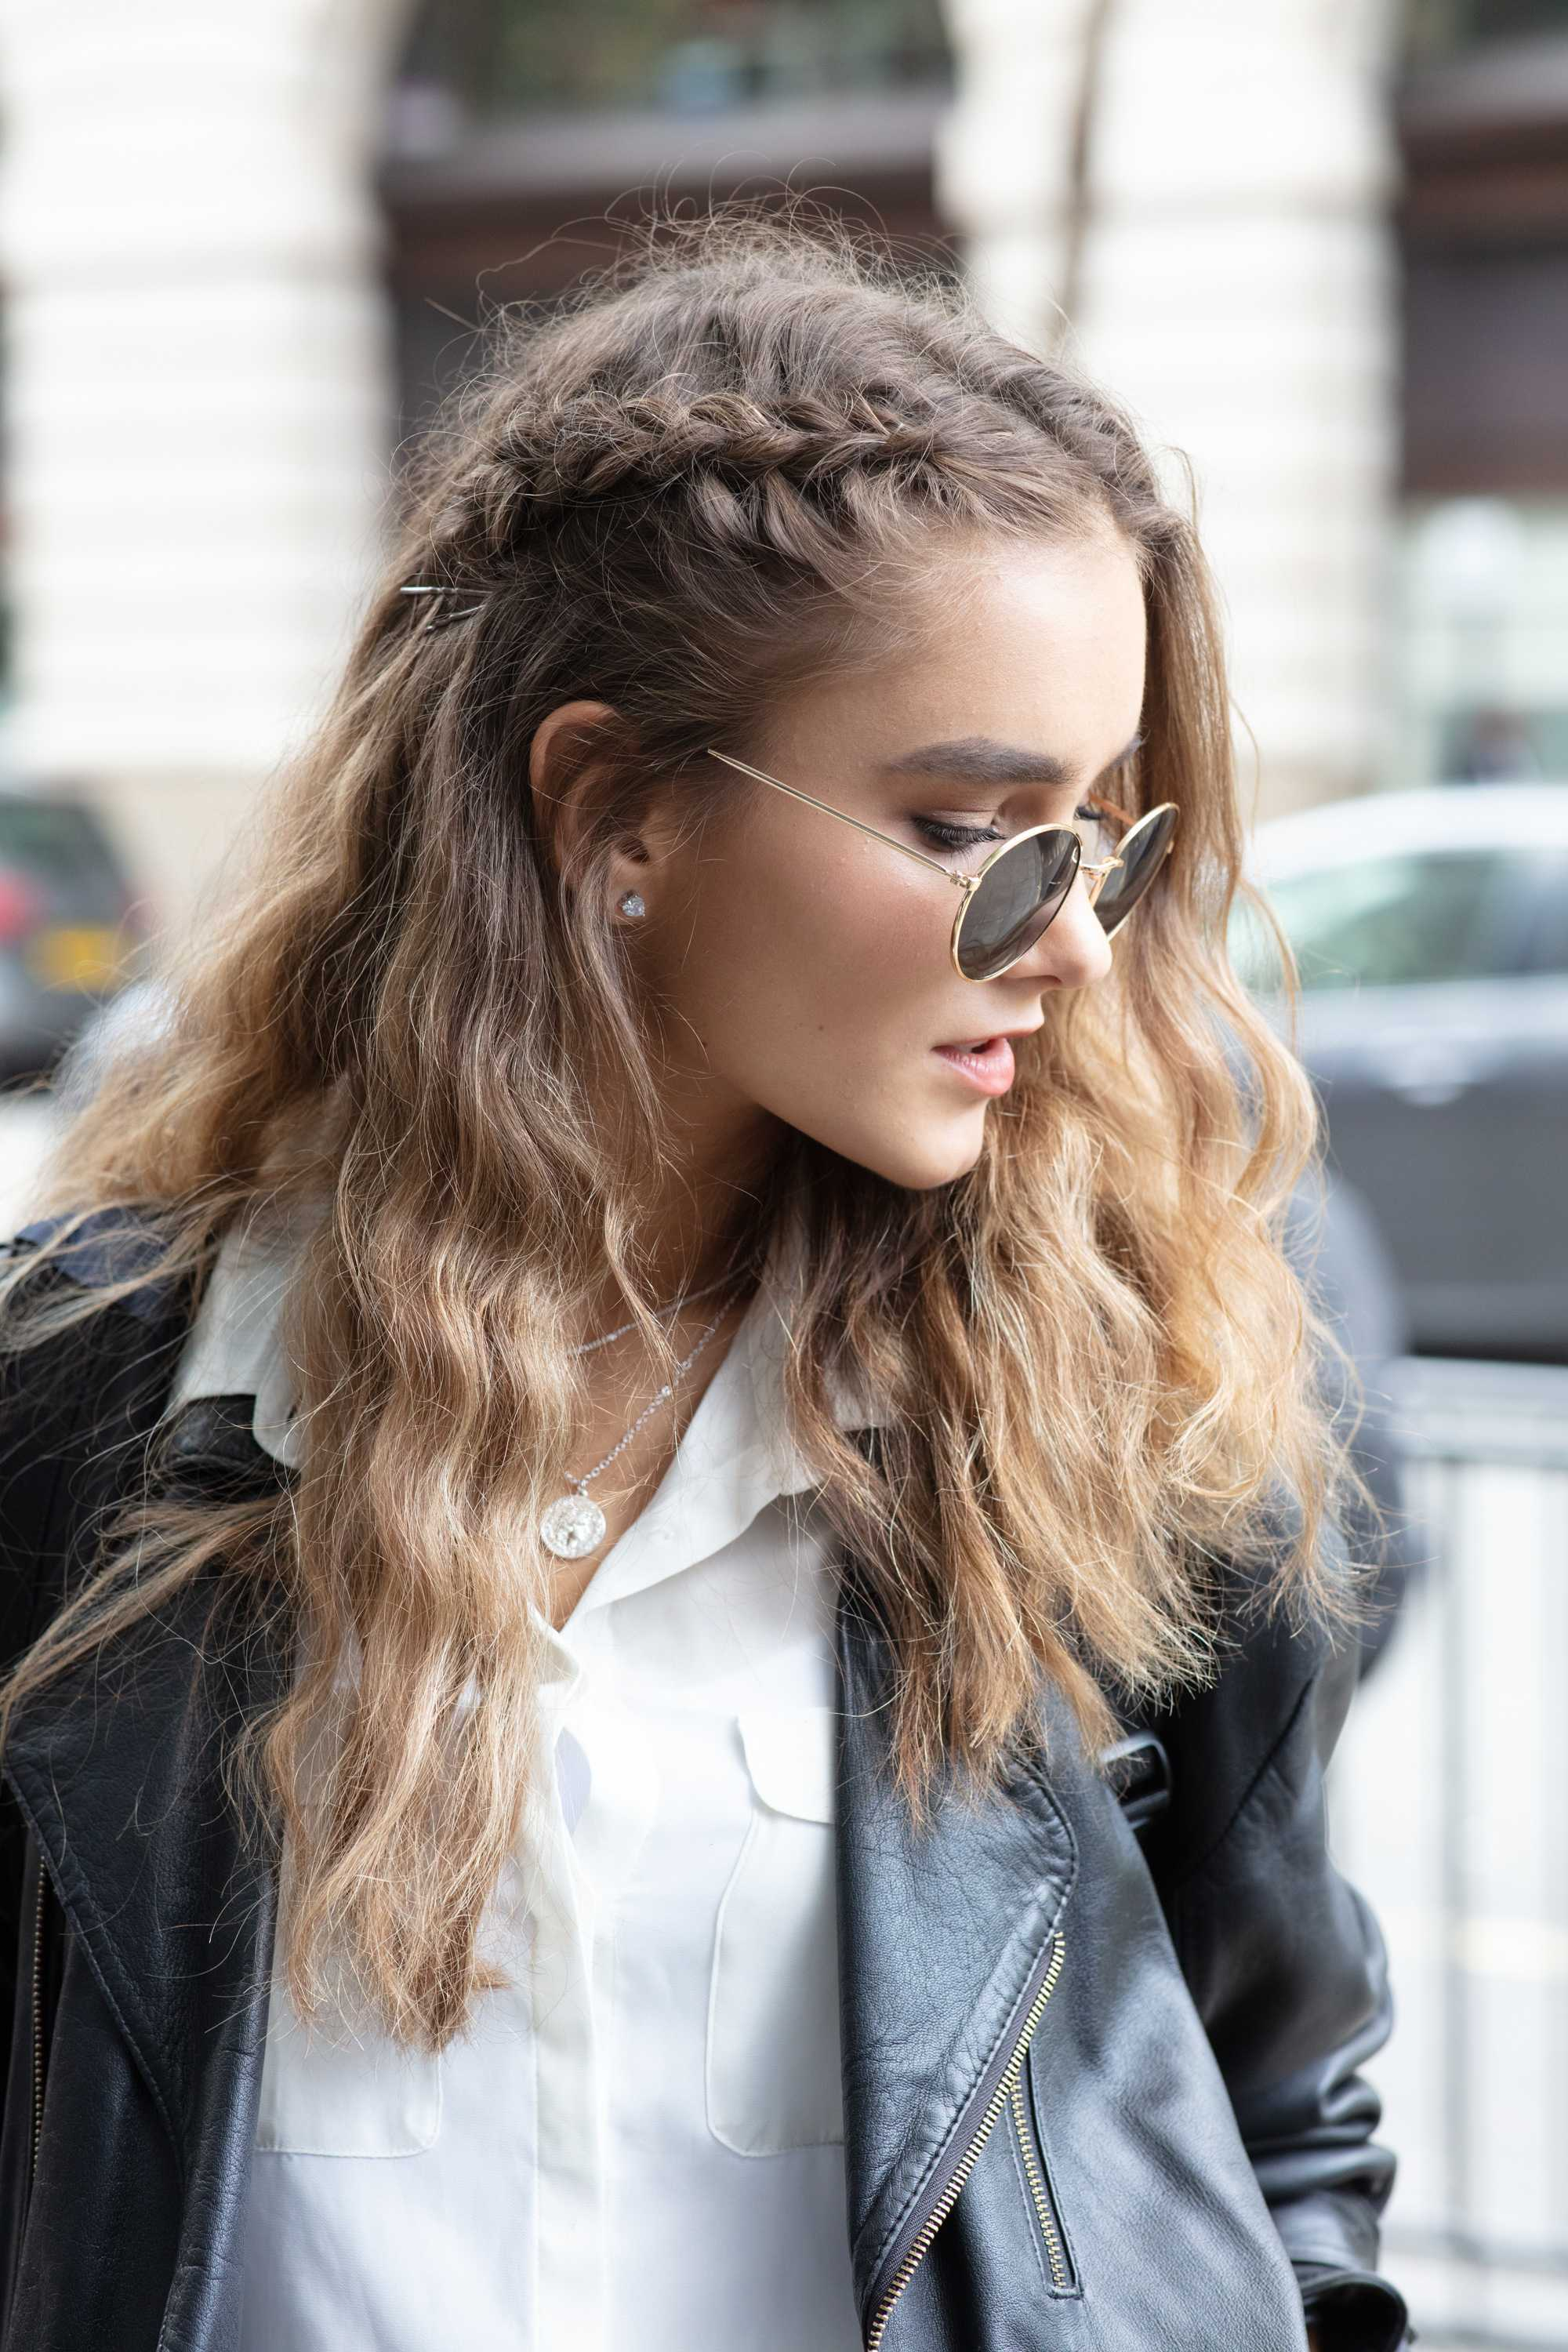 London Fashion Week street style hair: Close up shot of a woman with light brown long hair styled into waves with a side plait, wearing sunglasses and leather jacket and posing on the street